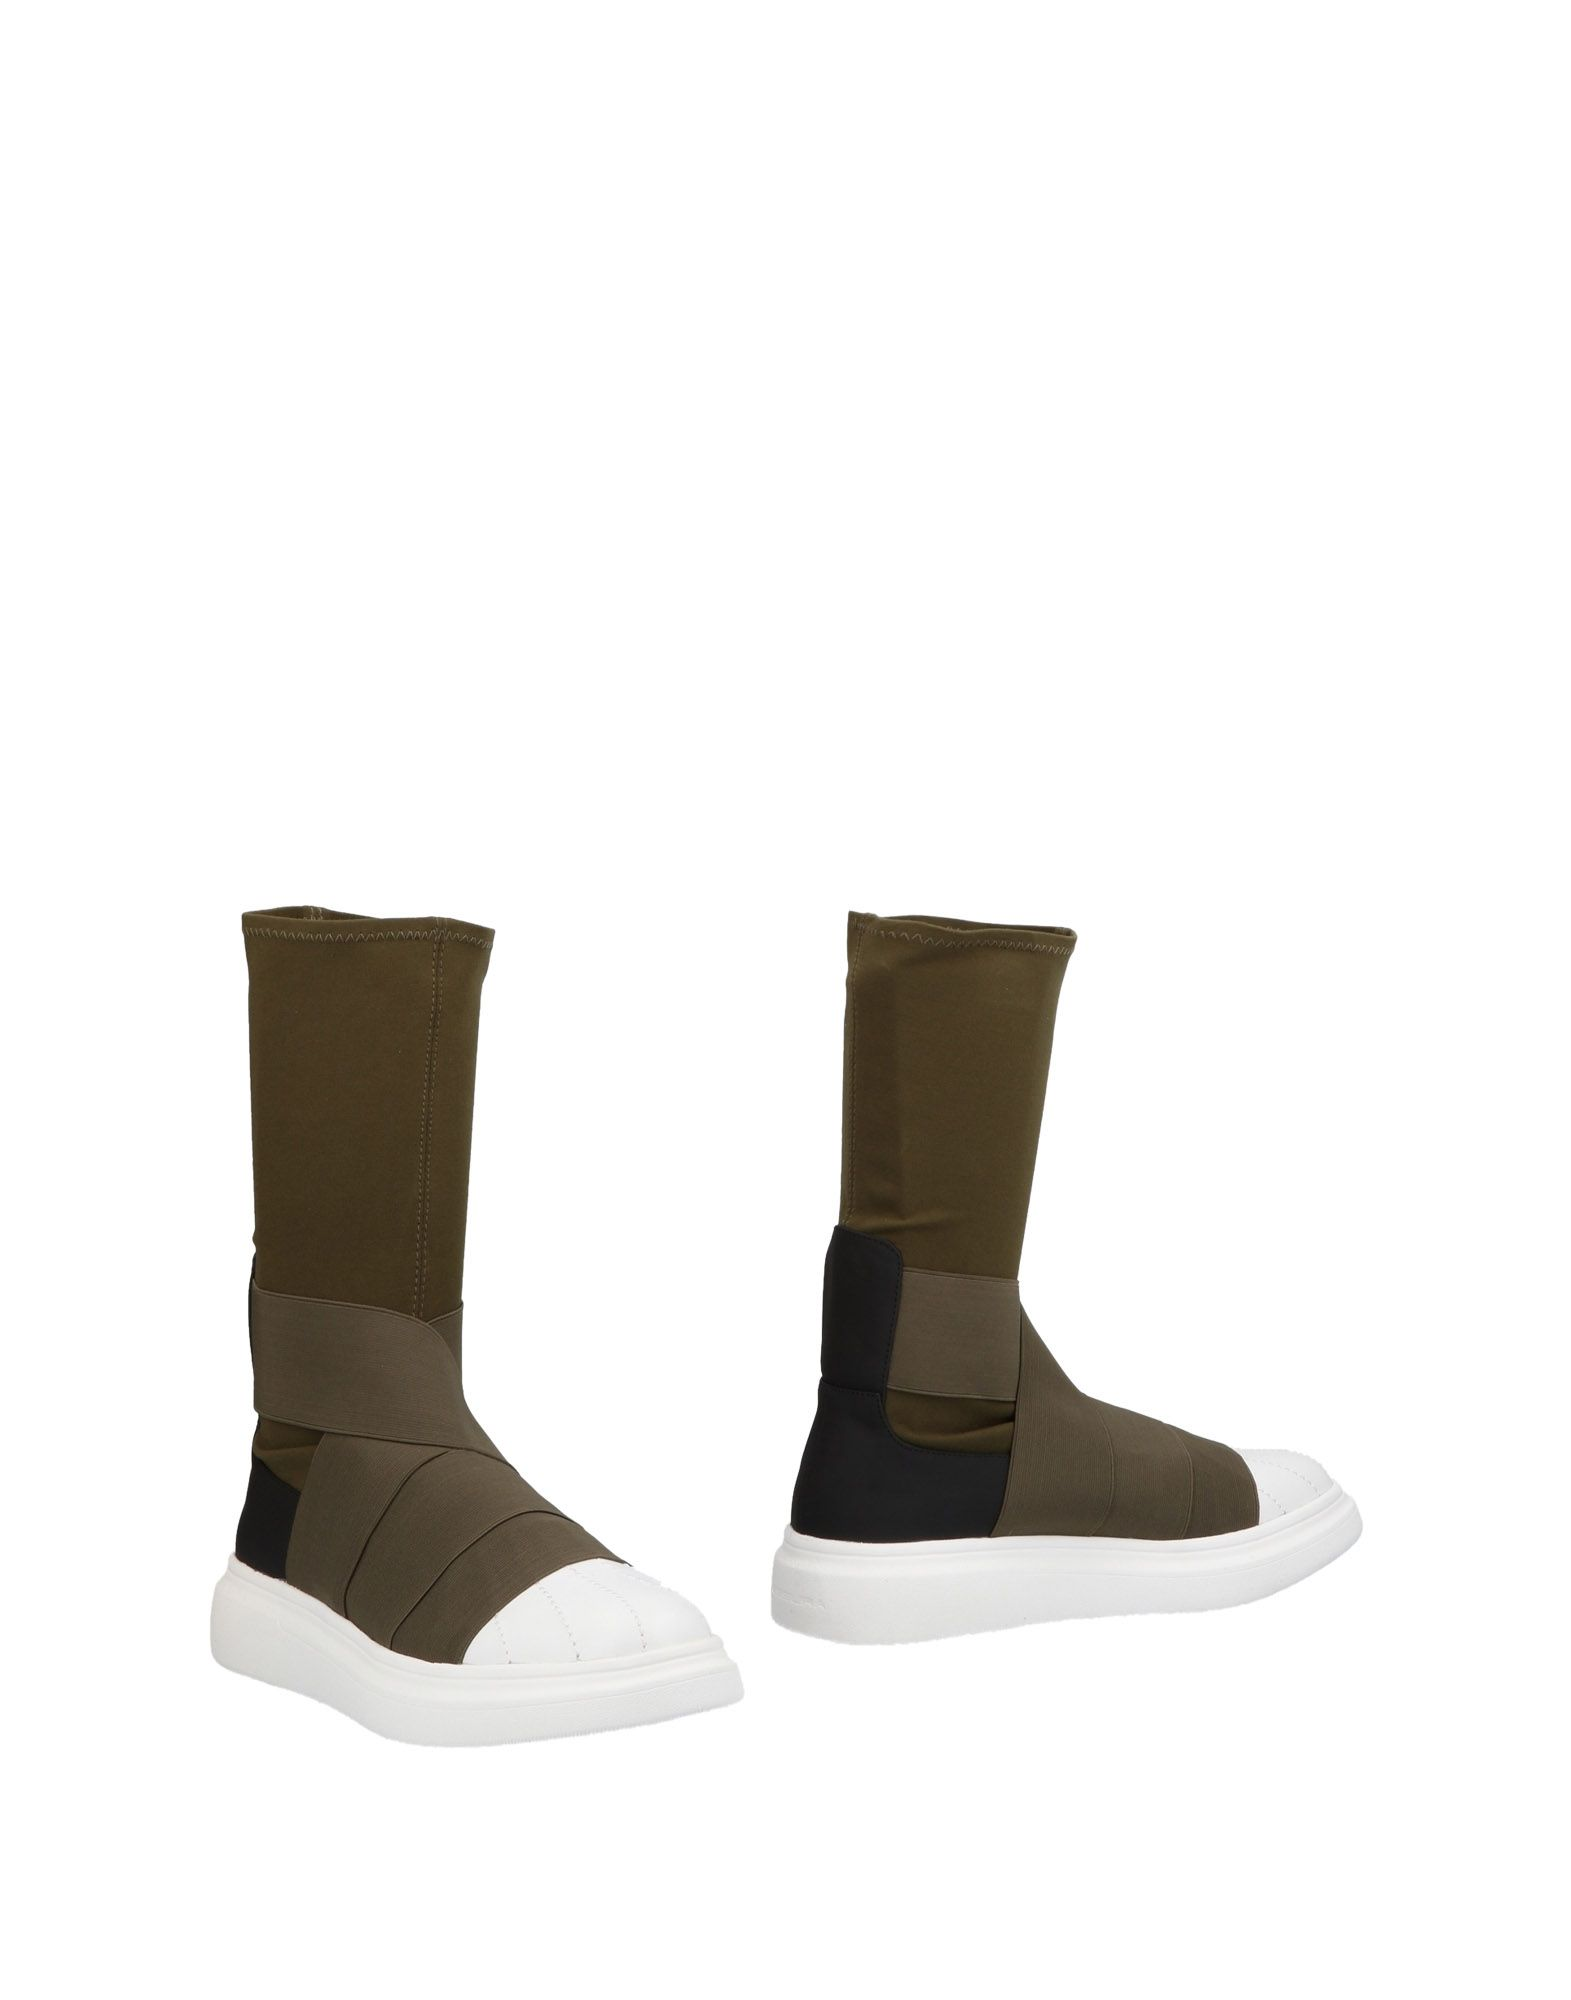 Fessura Boots United - Men Fessura Boots online on  United Boots Kingdom - 11490620TL 603a65